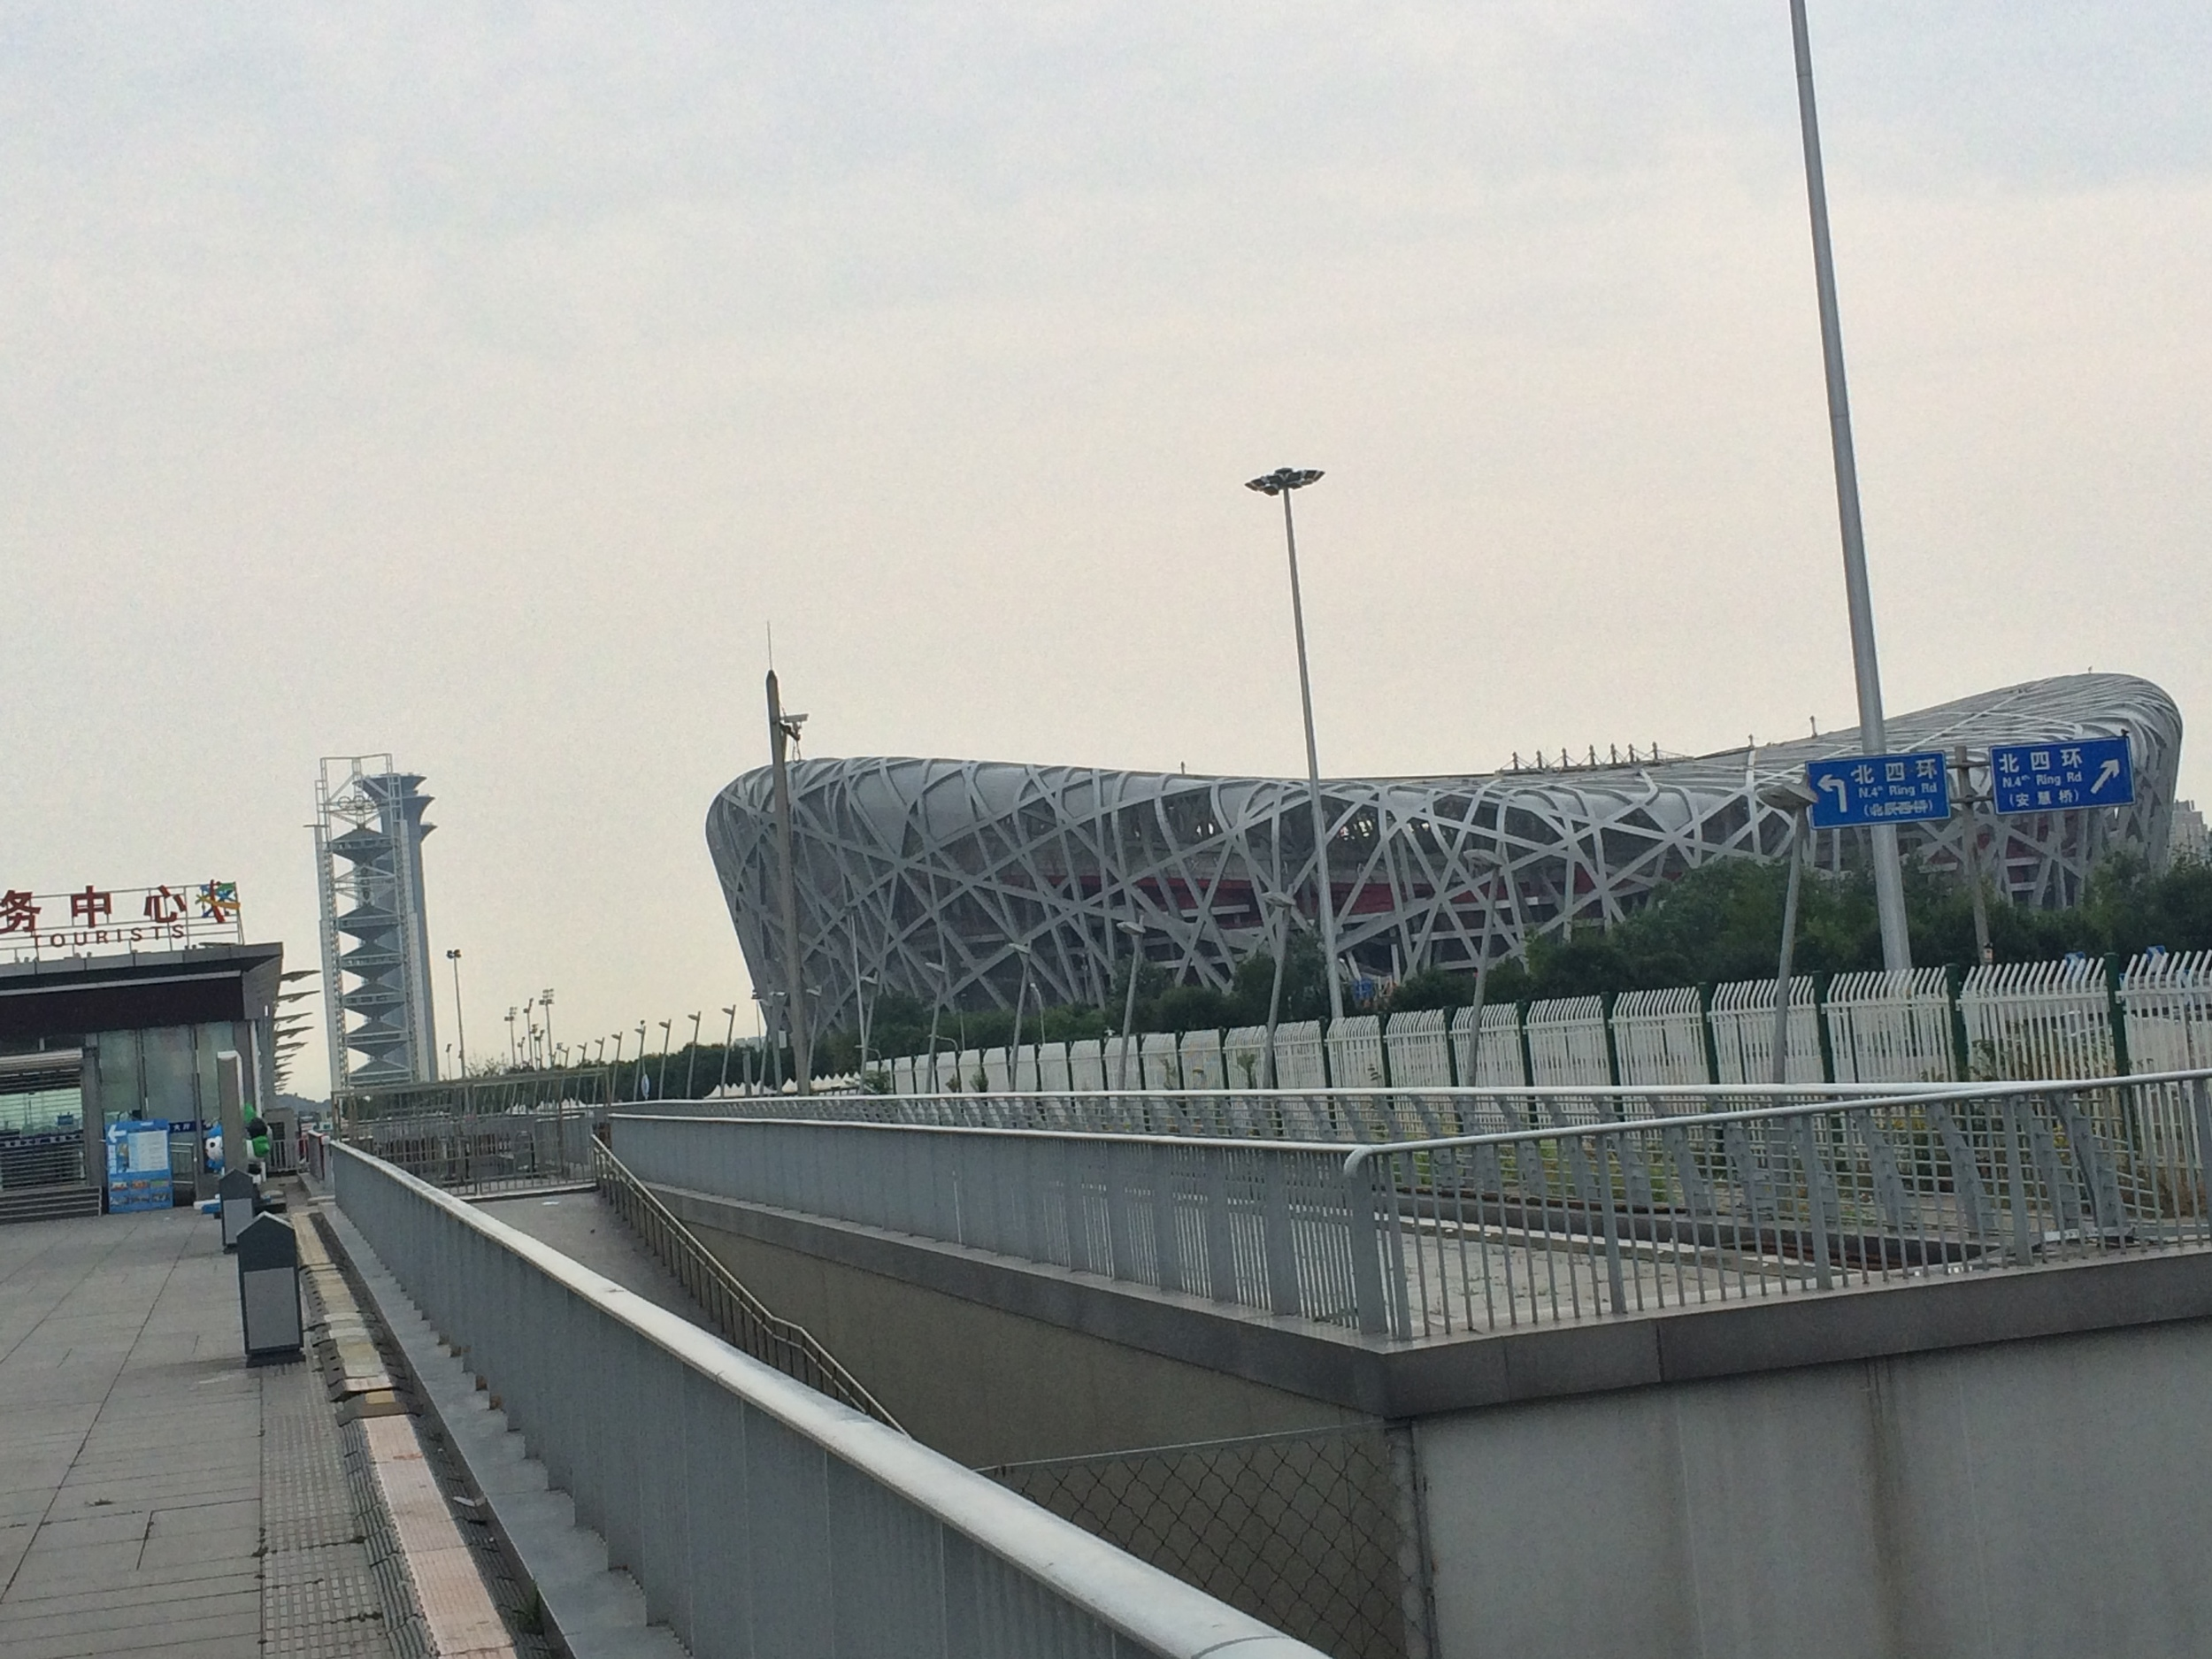 In Beijing, near our hotel - the 2008 Olympic Stadium! That's the main stadium, the Bird's Next, on the right.